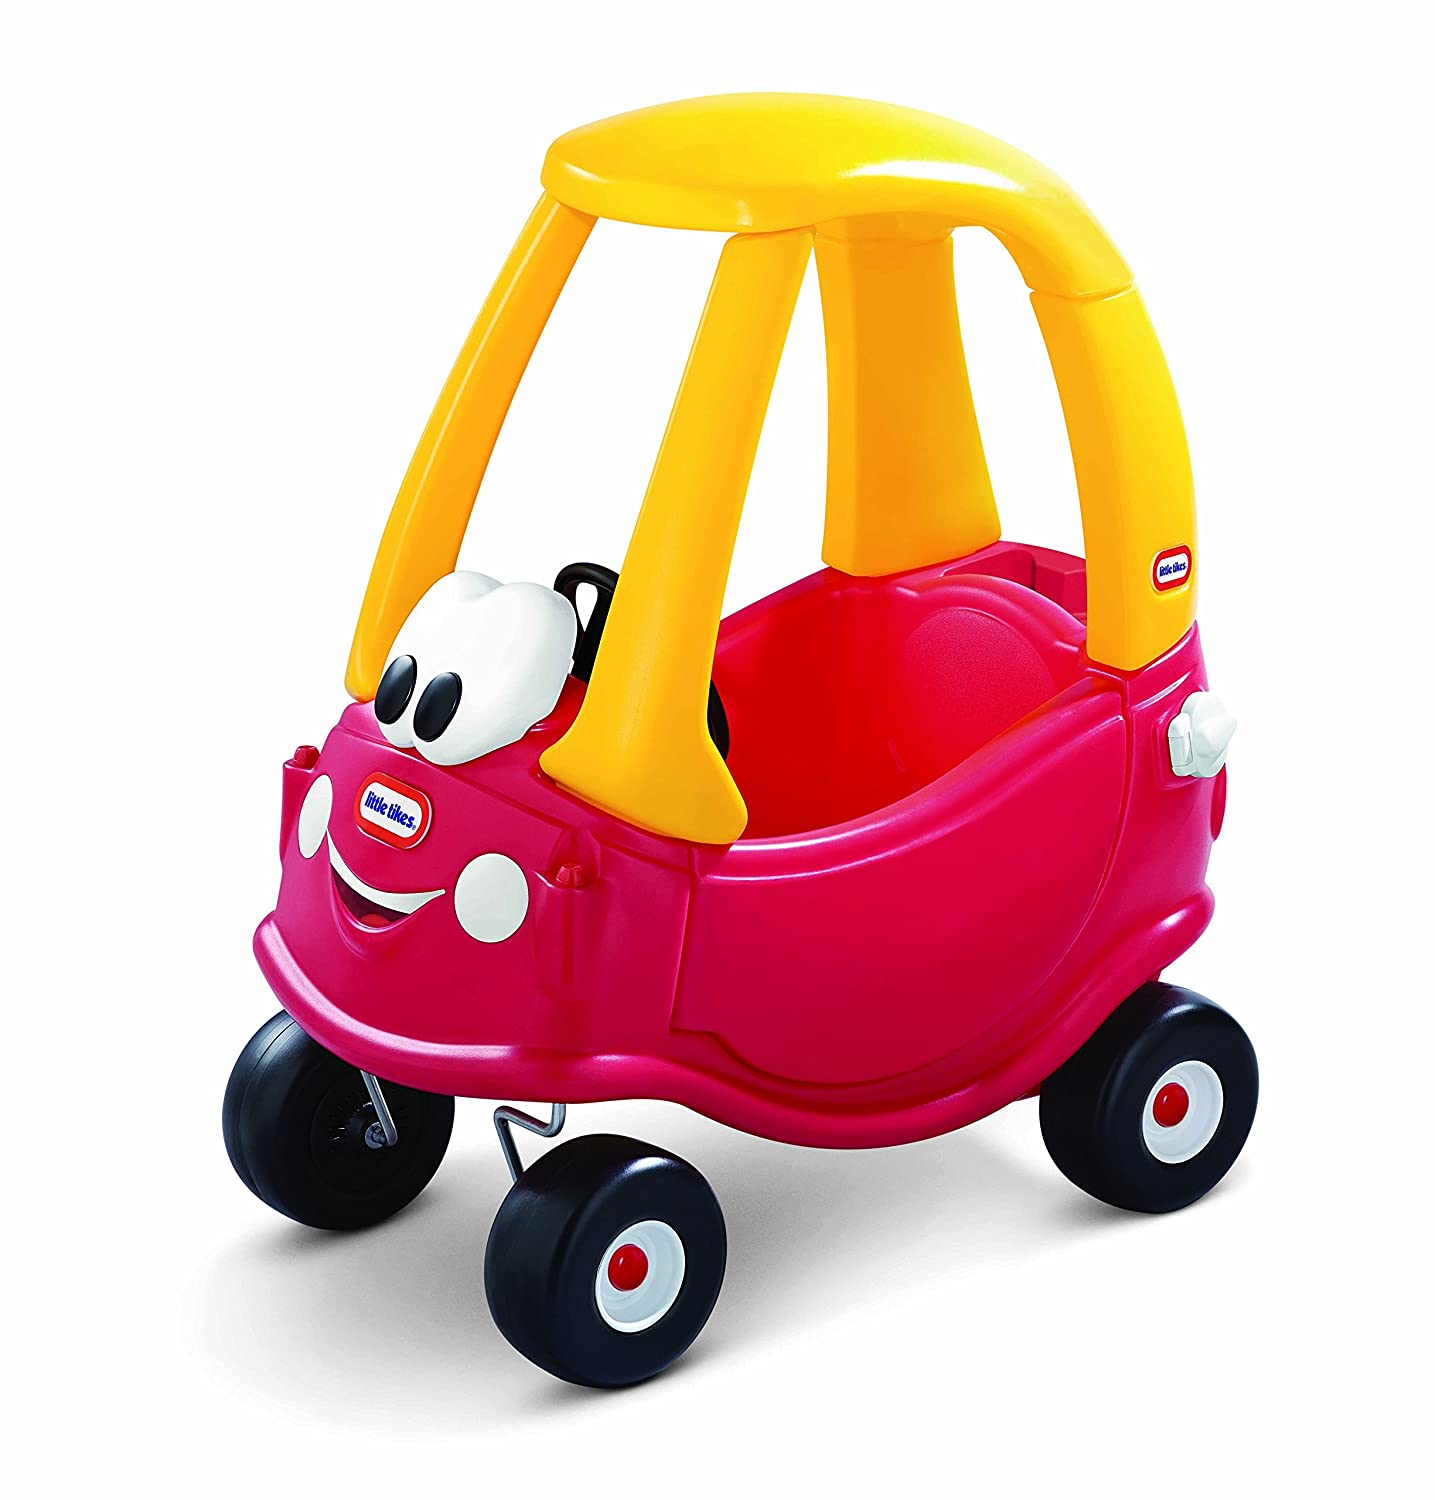 Amazon Little Tikes Cozy Coupe 30th Anniversary Car Toys & Games